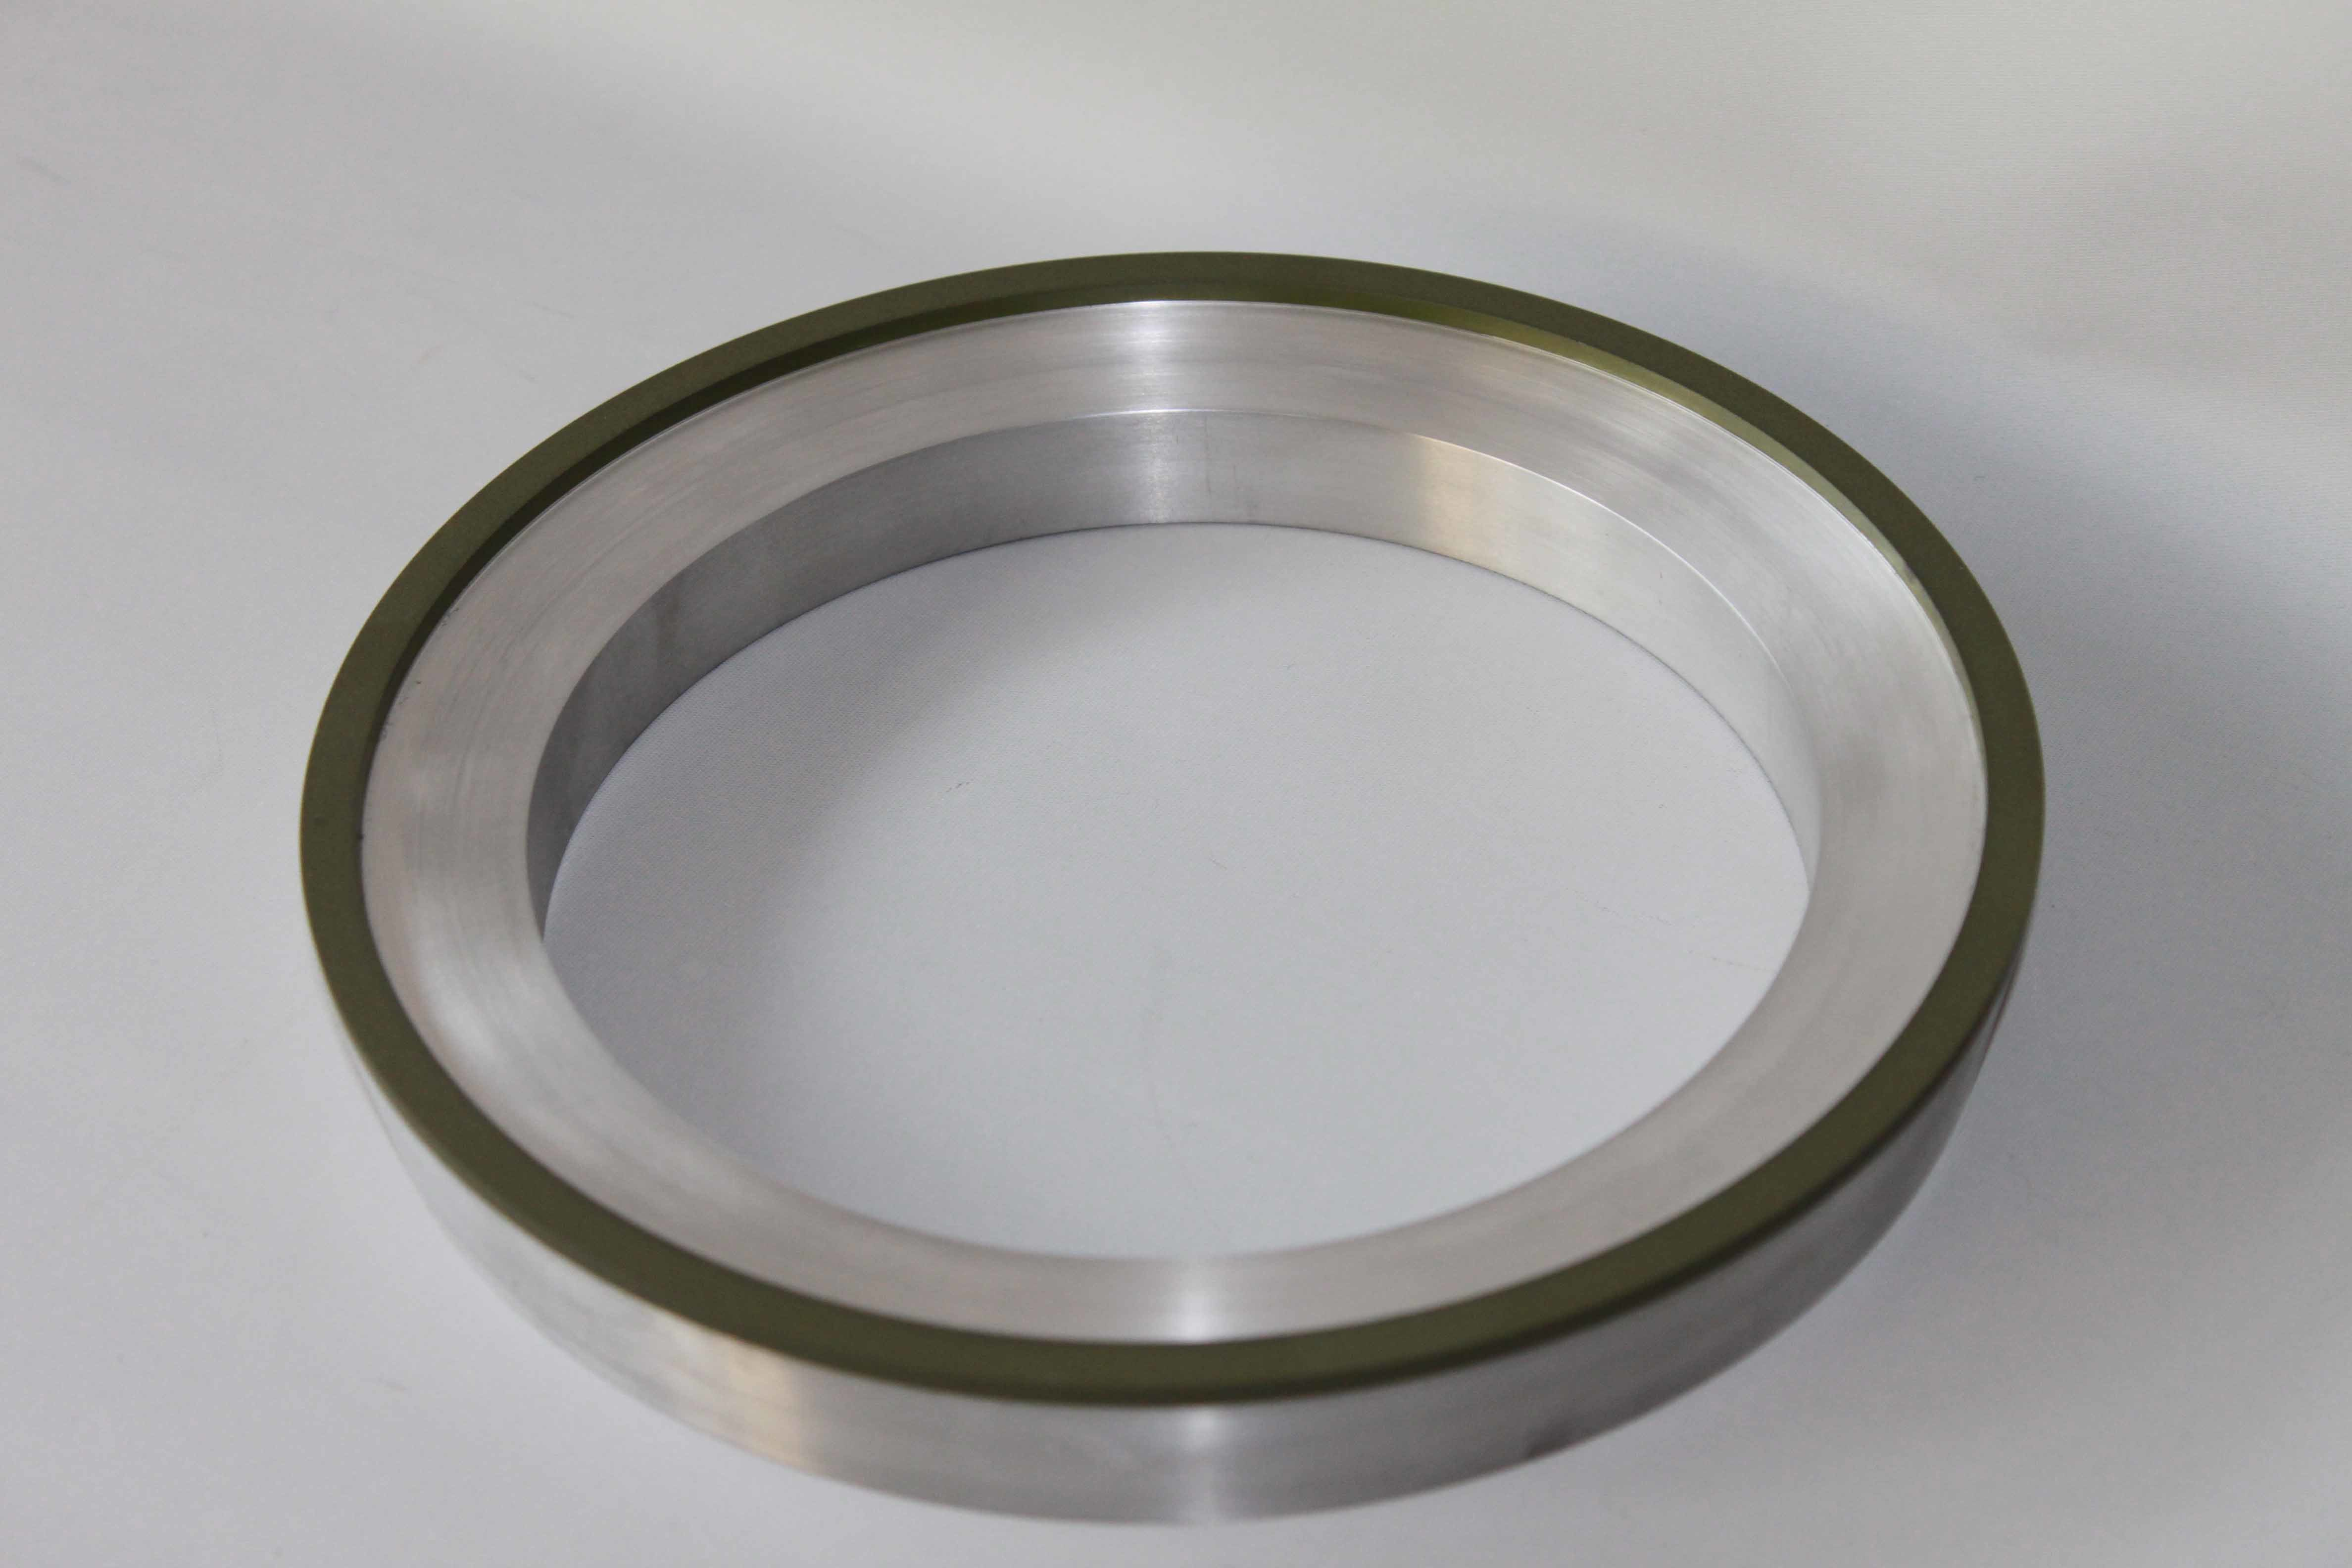 Peripheral Grinding Wheels for Inserts